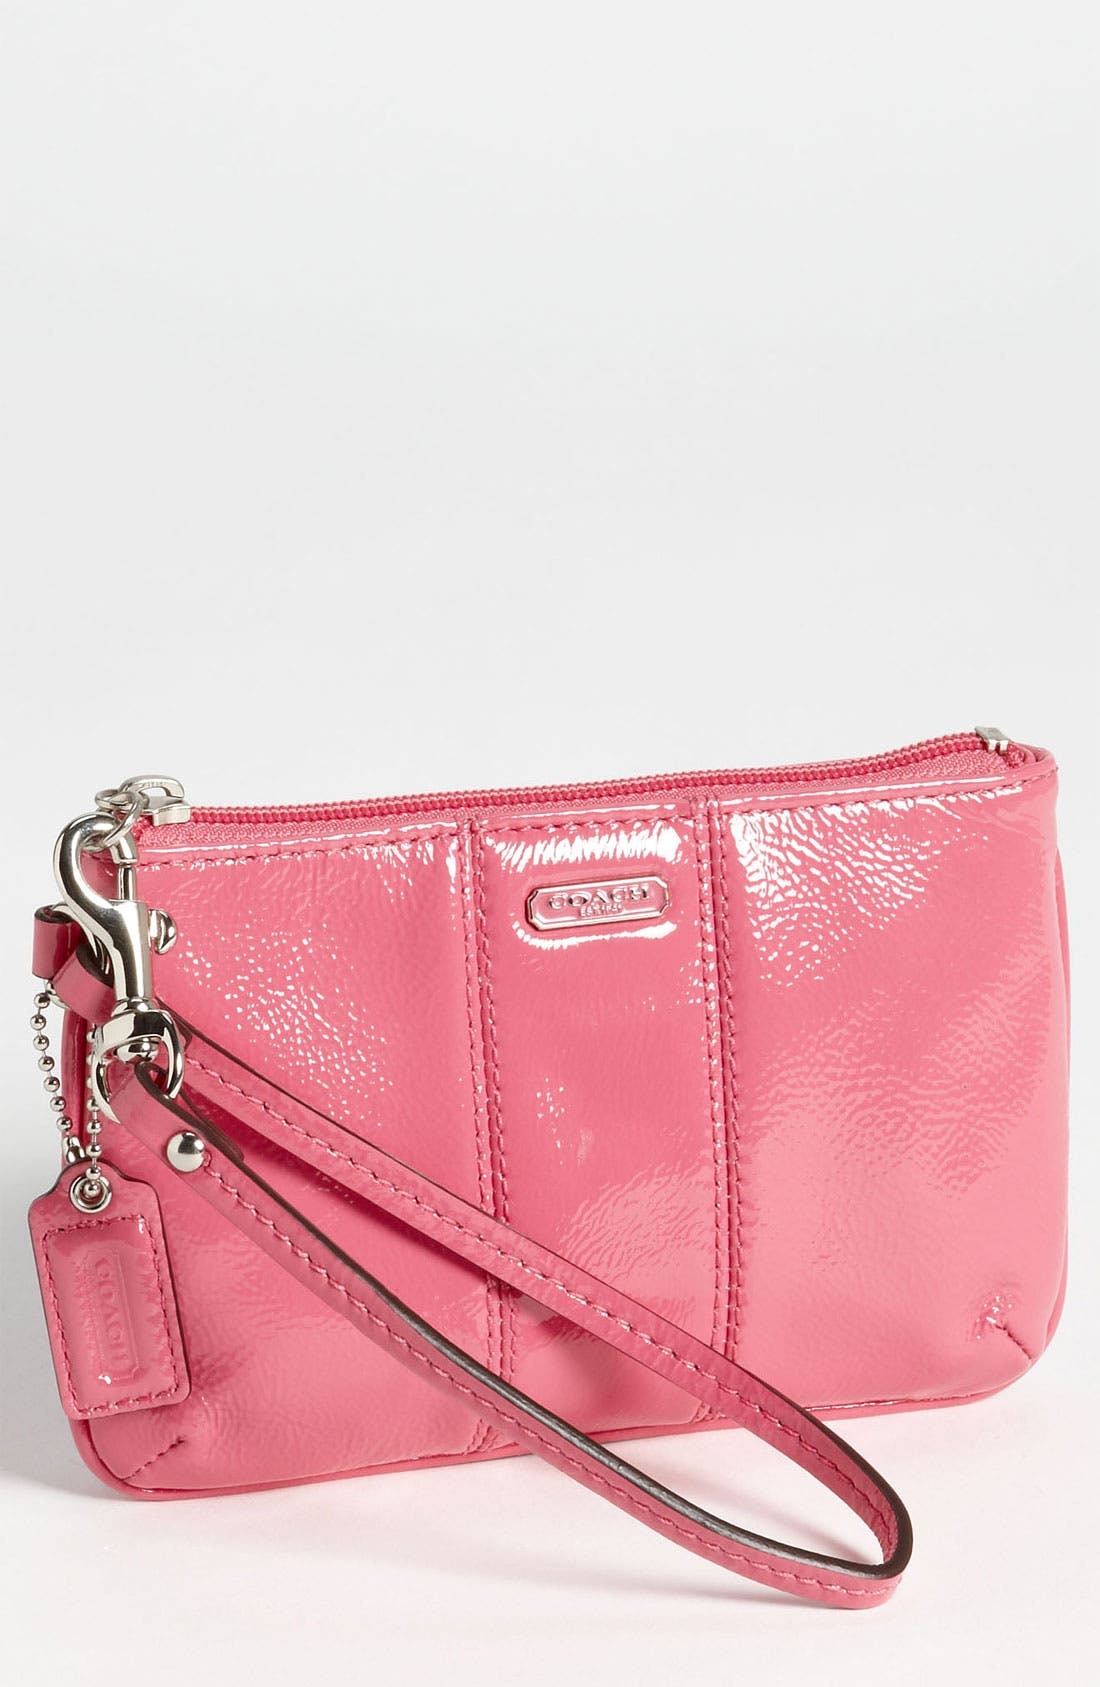 Alternate Image 1 Selected - COACH 'Small' Patent Leather Wristlet